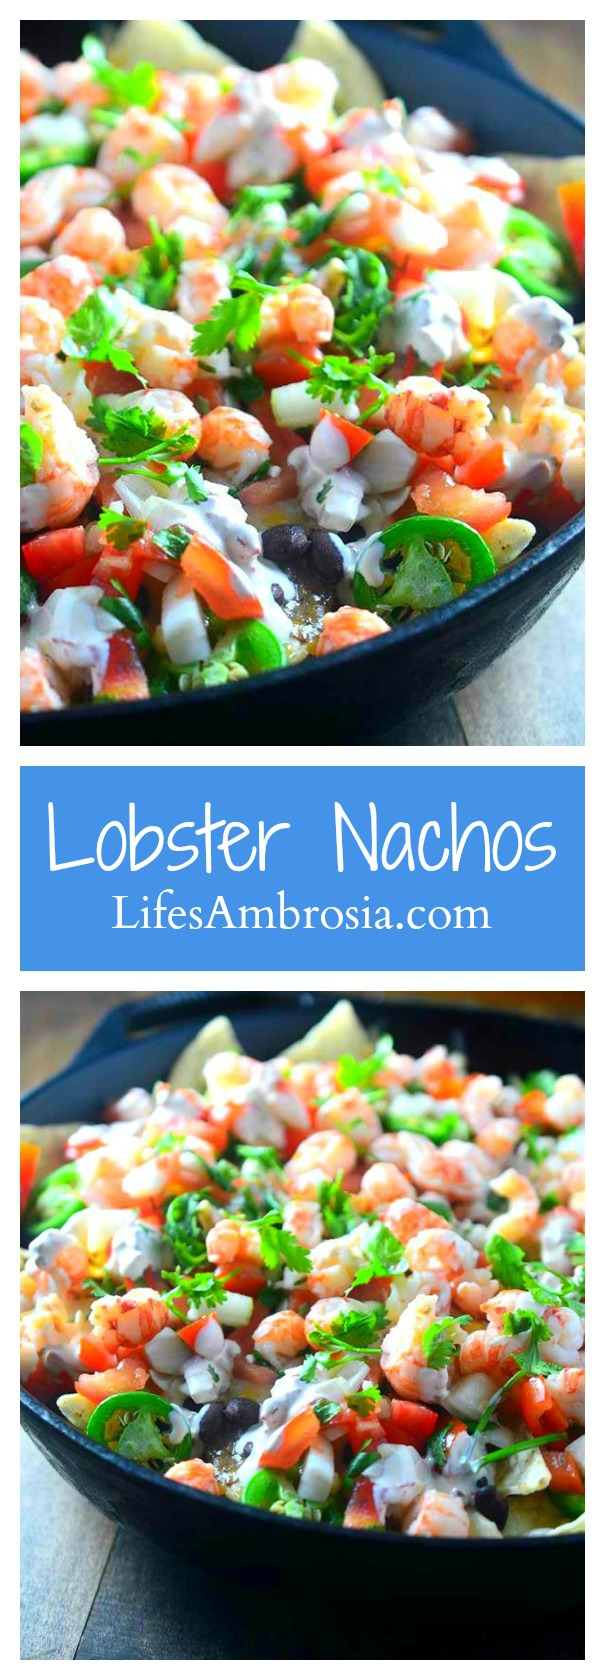 Lobster nachos are piled high with langoustine lobster tails, two kinds of cheese, black beans, homemade pico de gallo, jalapeños and a creamy chipotle sour cream.